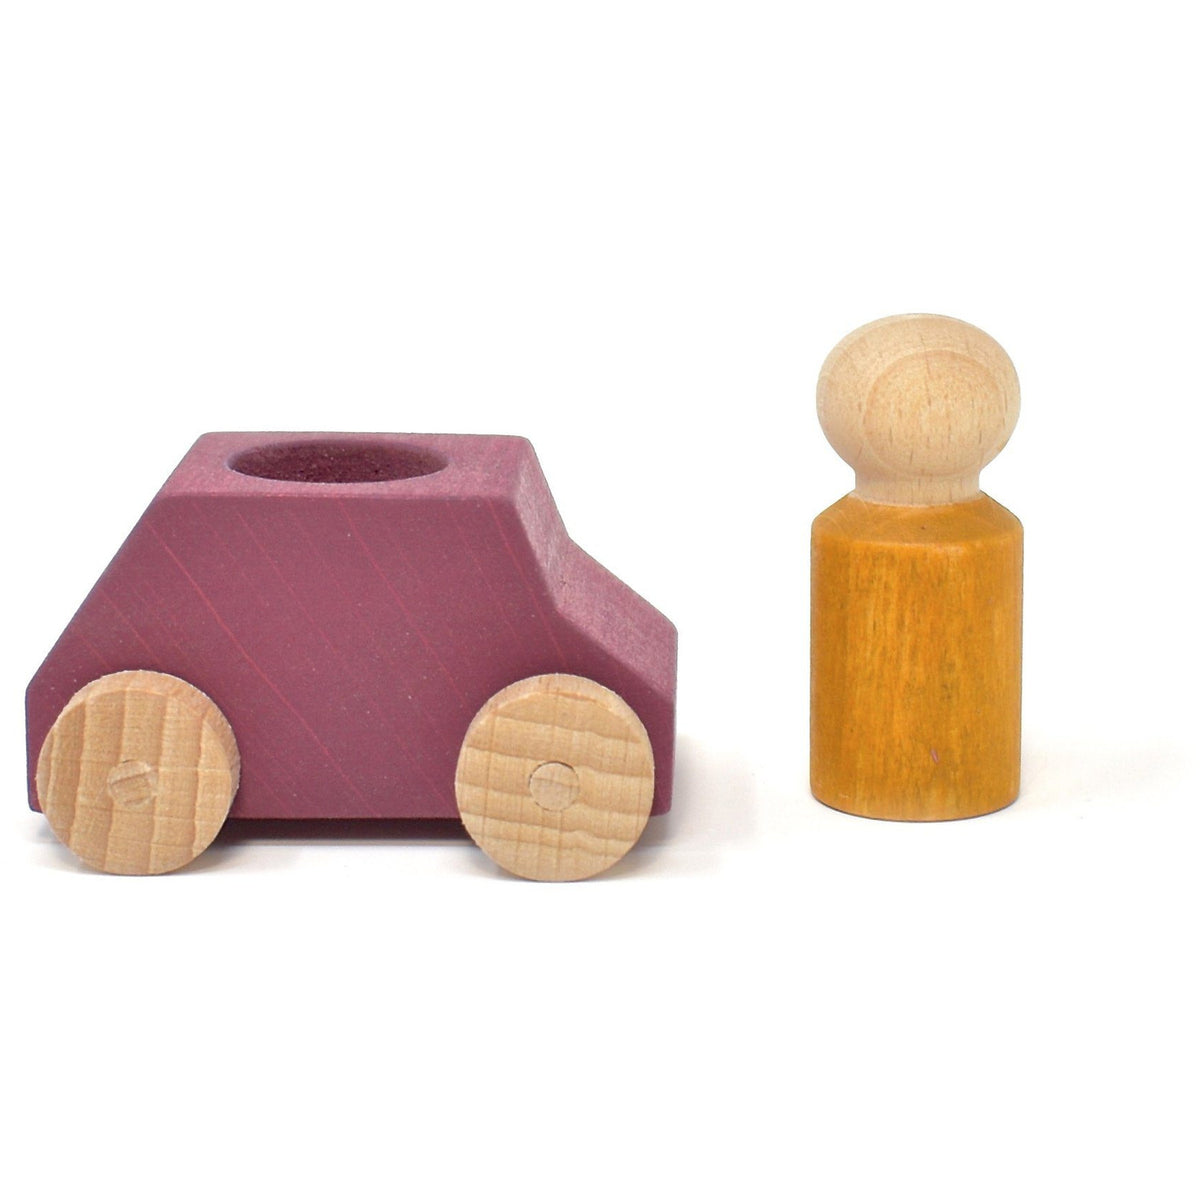 Lubulona Plum Wooden Toy Car